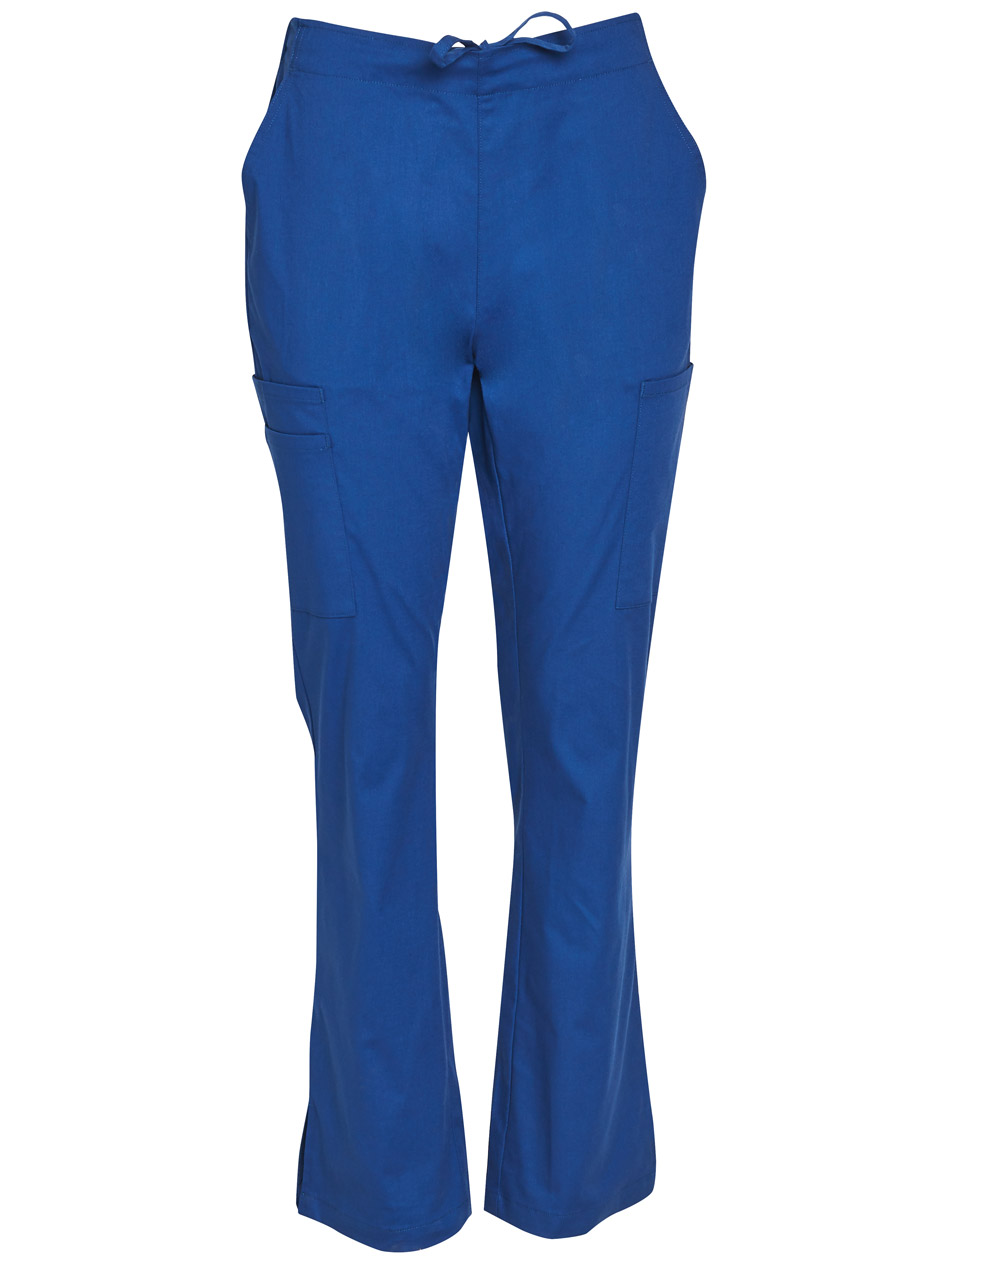 Order Royal Ladies Semi-Elastic Waist Tie Solid Colour Scrub Pants in Perth